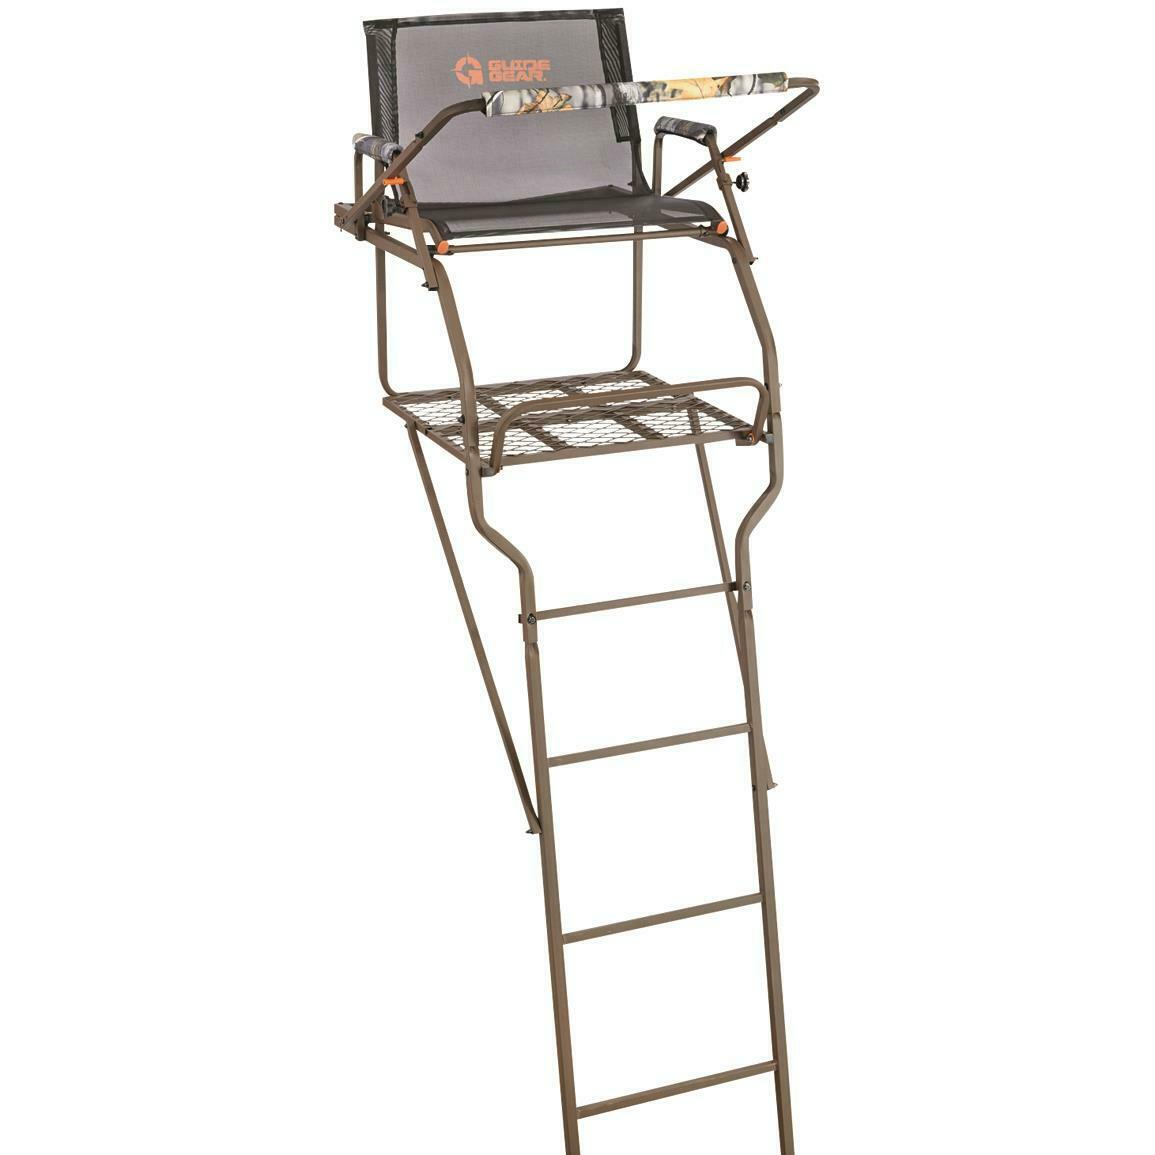 Ladder Tree Stand 15 to 18 ft Game Stands Gun Bow Hunting Ar